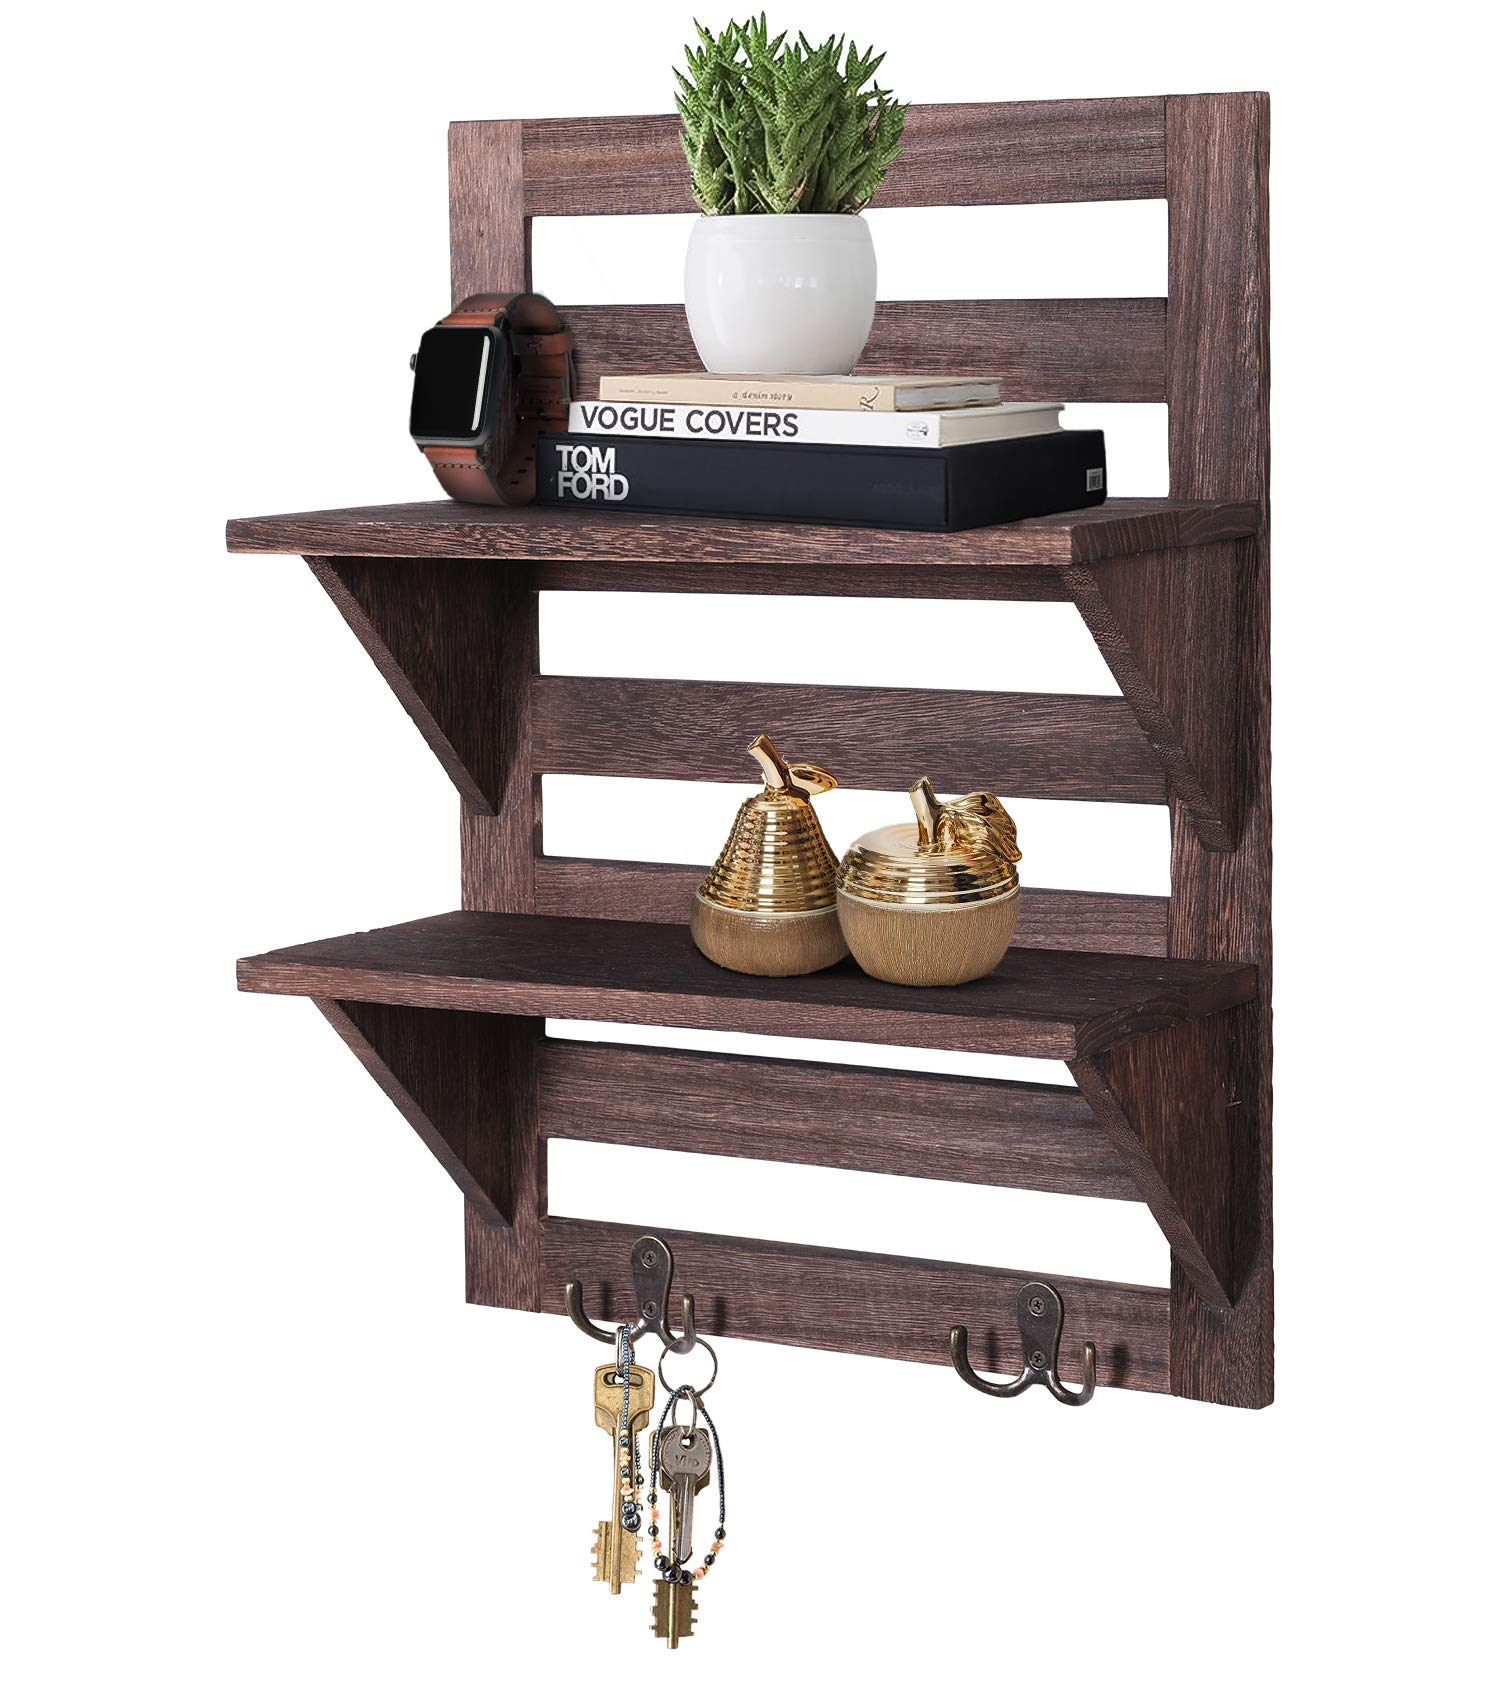 Rustic Wall Mounted Shelves - Kitchen or Bathroom Farmhouse Rustic Décor - Vintage Wall Shelves with Two Double Iron Hooks & 2-Tier Storage Rack - Decorative Wall Shelf Organizer- Torched Brown